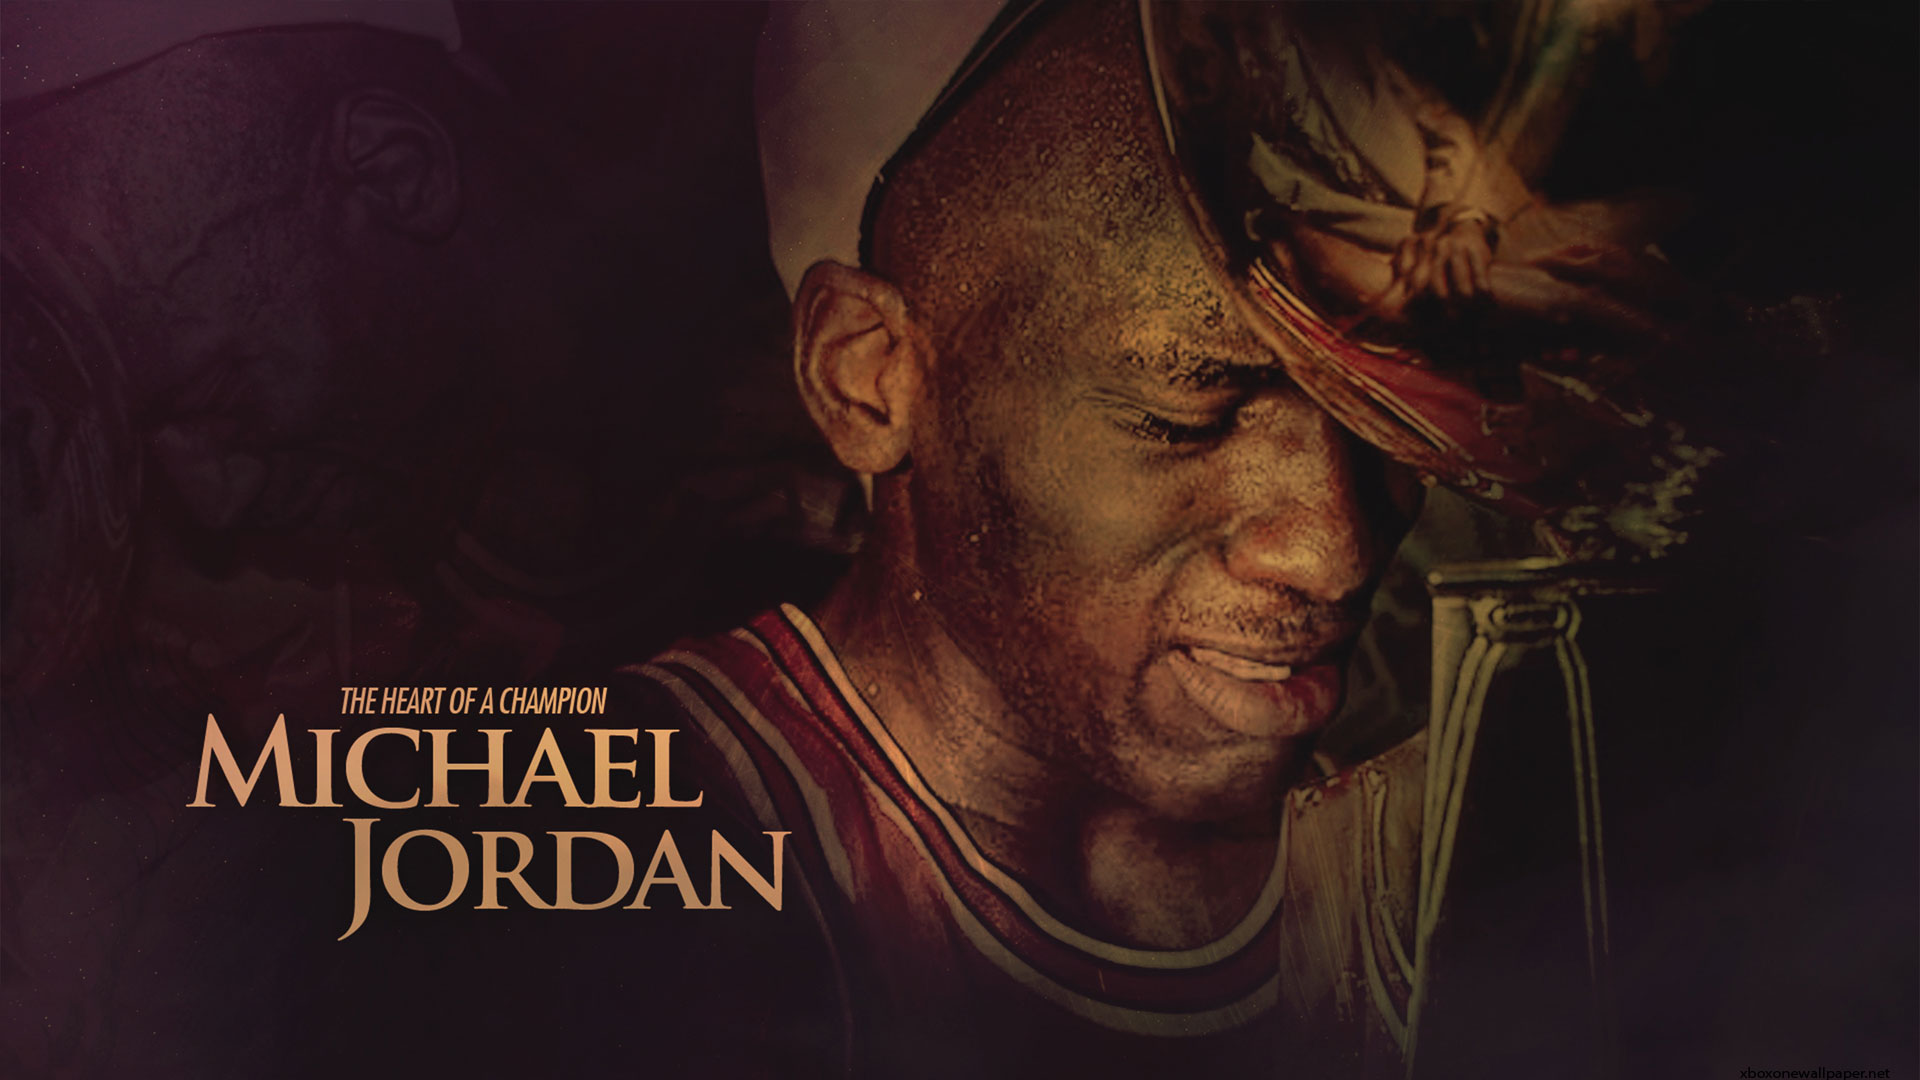 Michael Jordan Wallpaper 1080p: Michael Jordan Wallpaper Xbox One